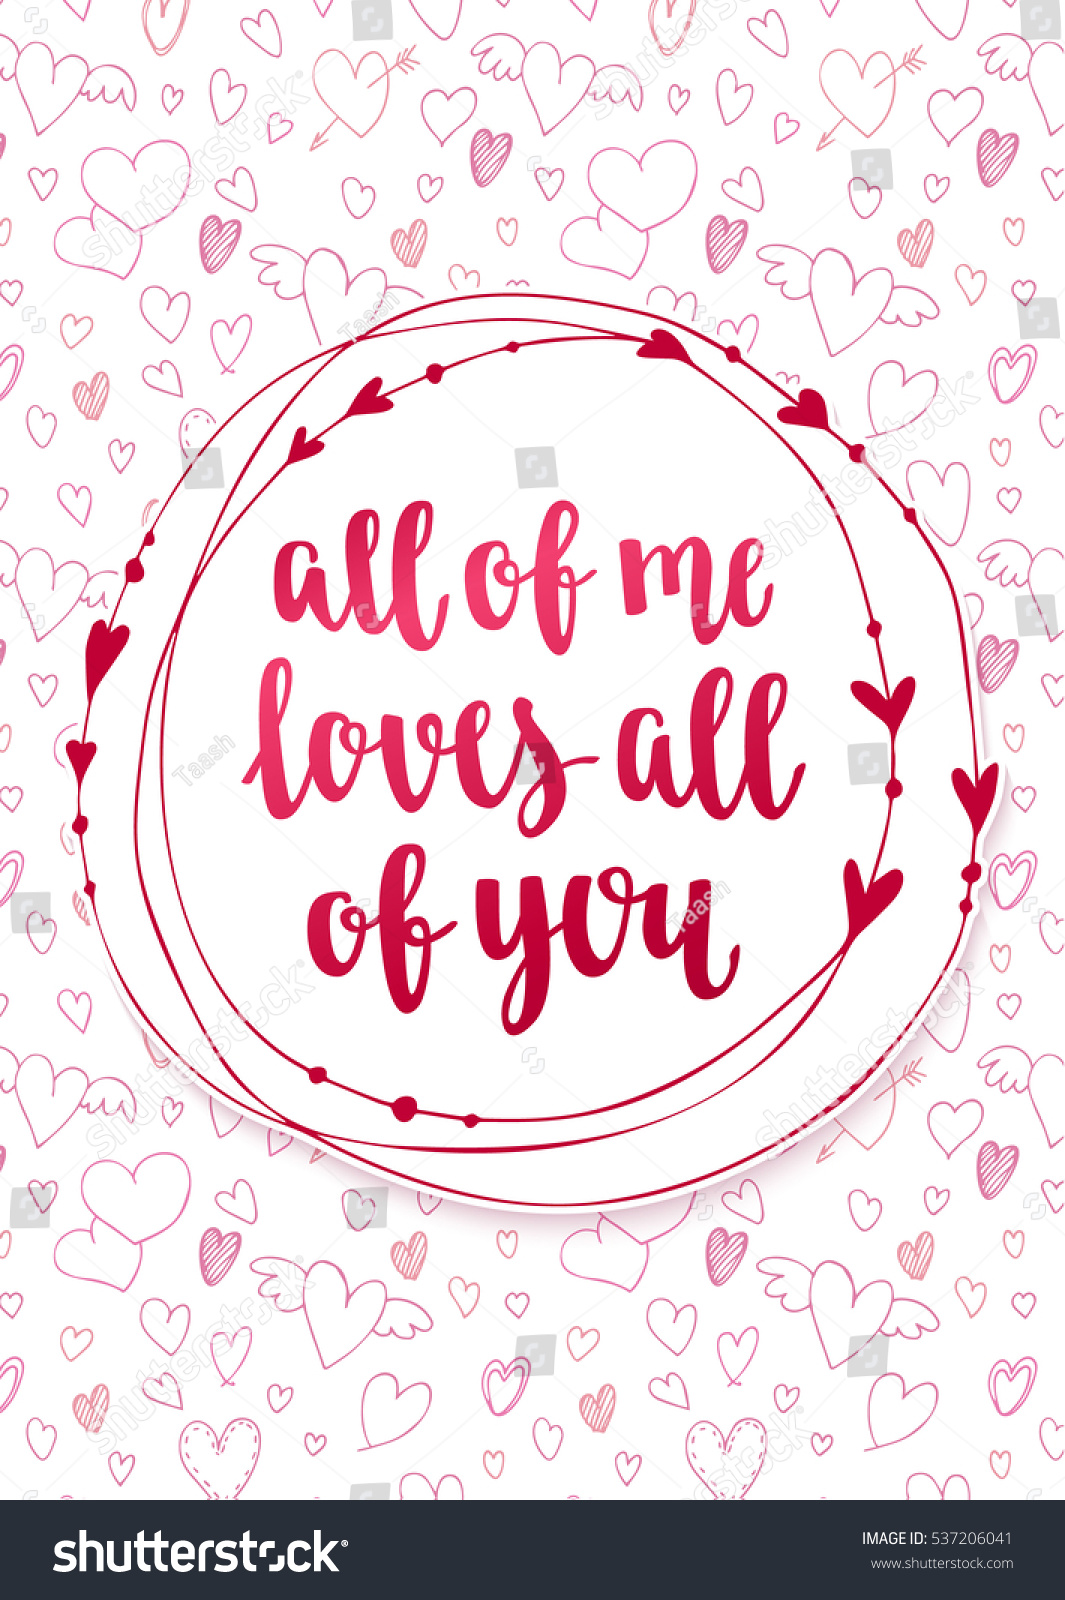 Delightful Romantic Saying For Posters, Cards Or Leaflet. Vector Phrase On